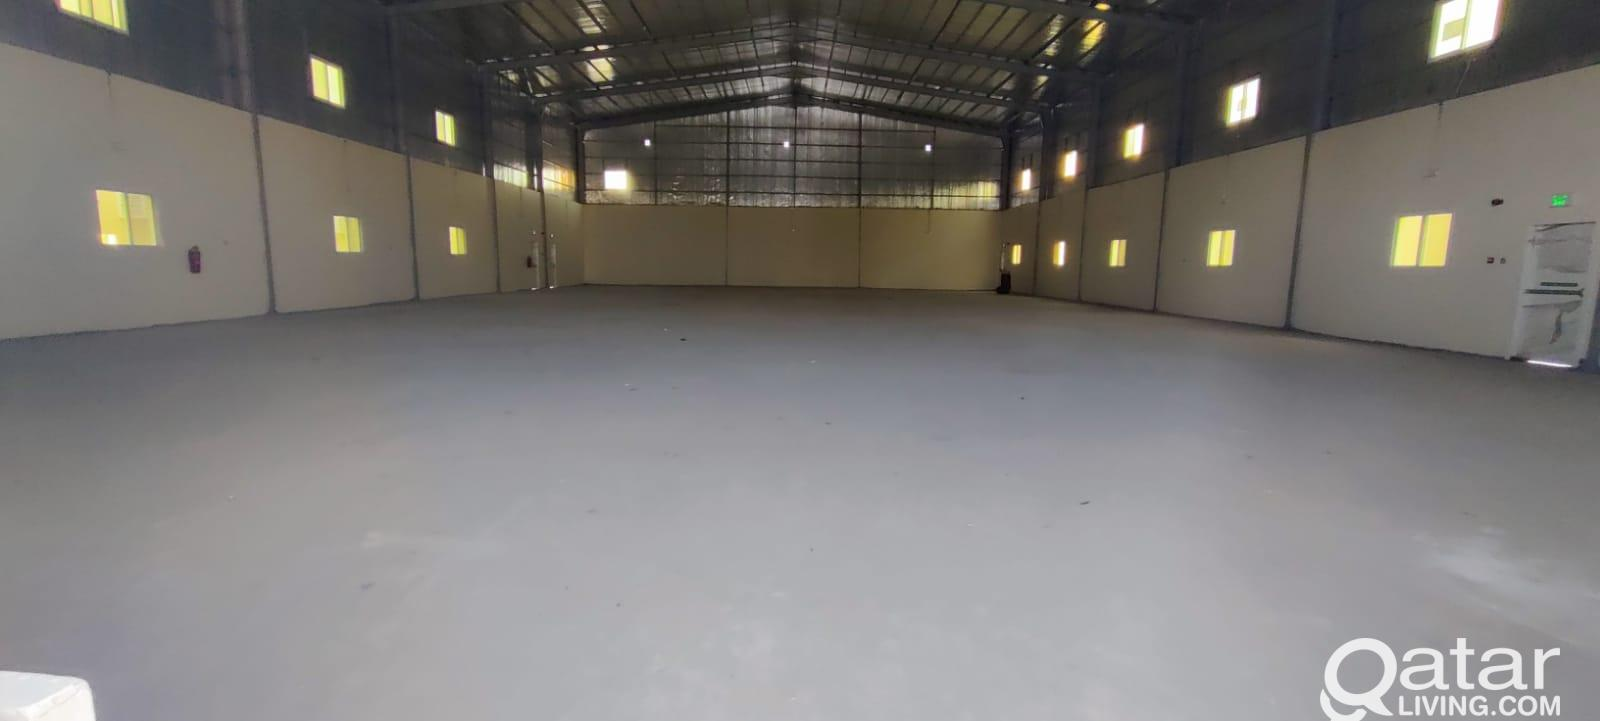 1000 Store / Garage For Rent